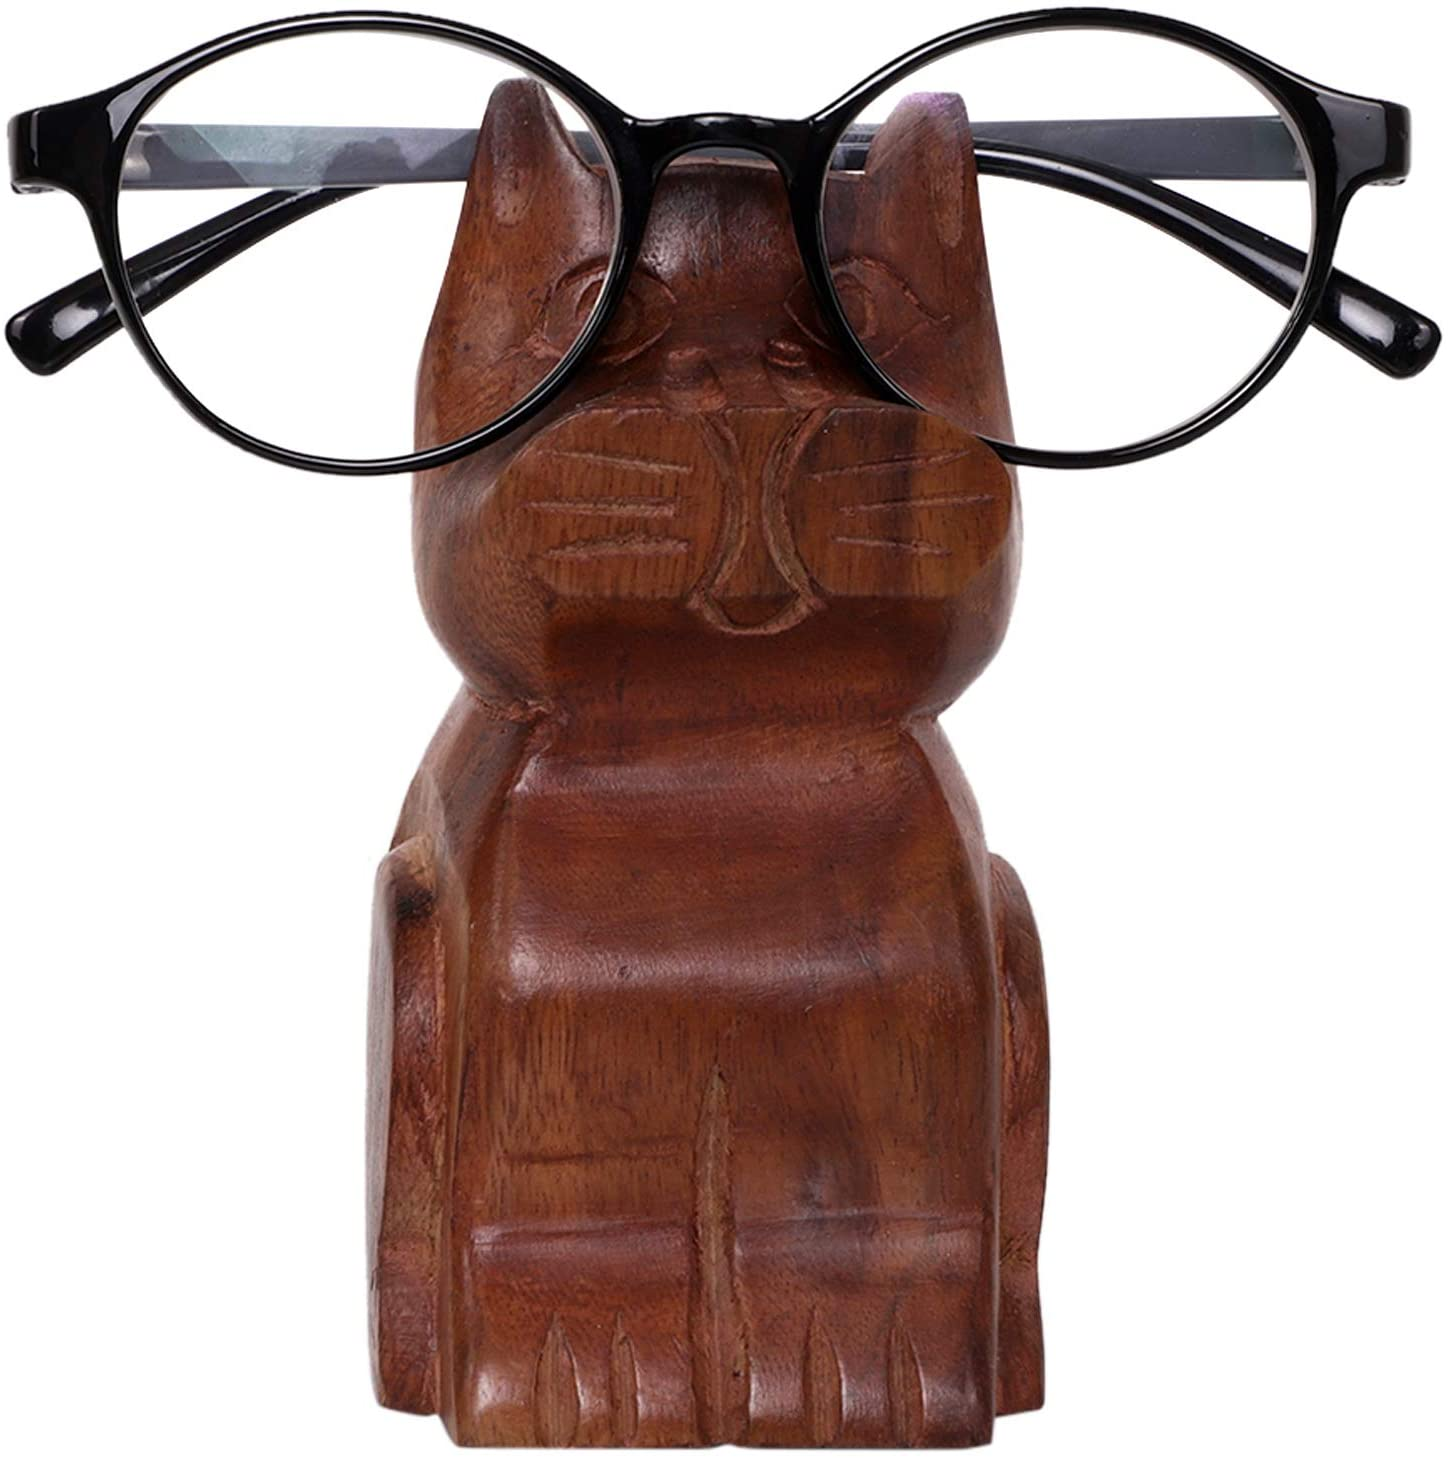 S.B.ARTS Handcrafted Wooden Spectacle Holder Cat Shaped Eyewear Retainer-Eyeglass Spectacle Specs Holder–Spec Stand-Optical Glass Accessories-Display Stand-Home Decor Accessories for Living Room